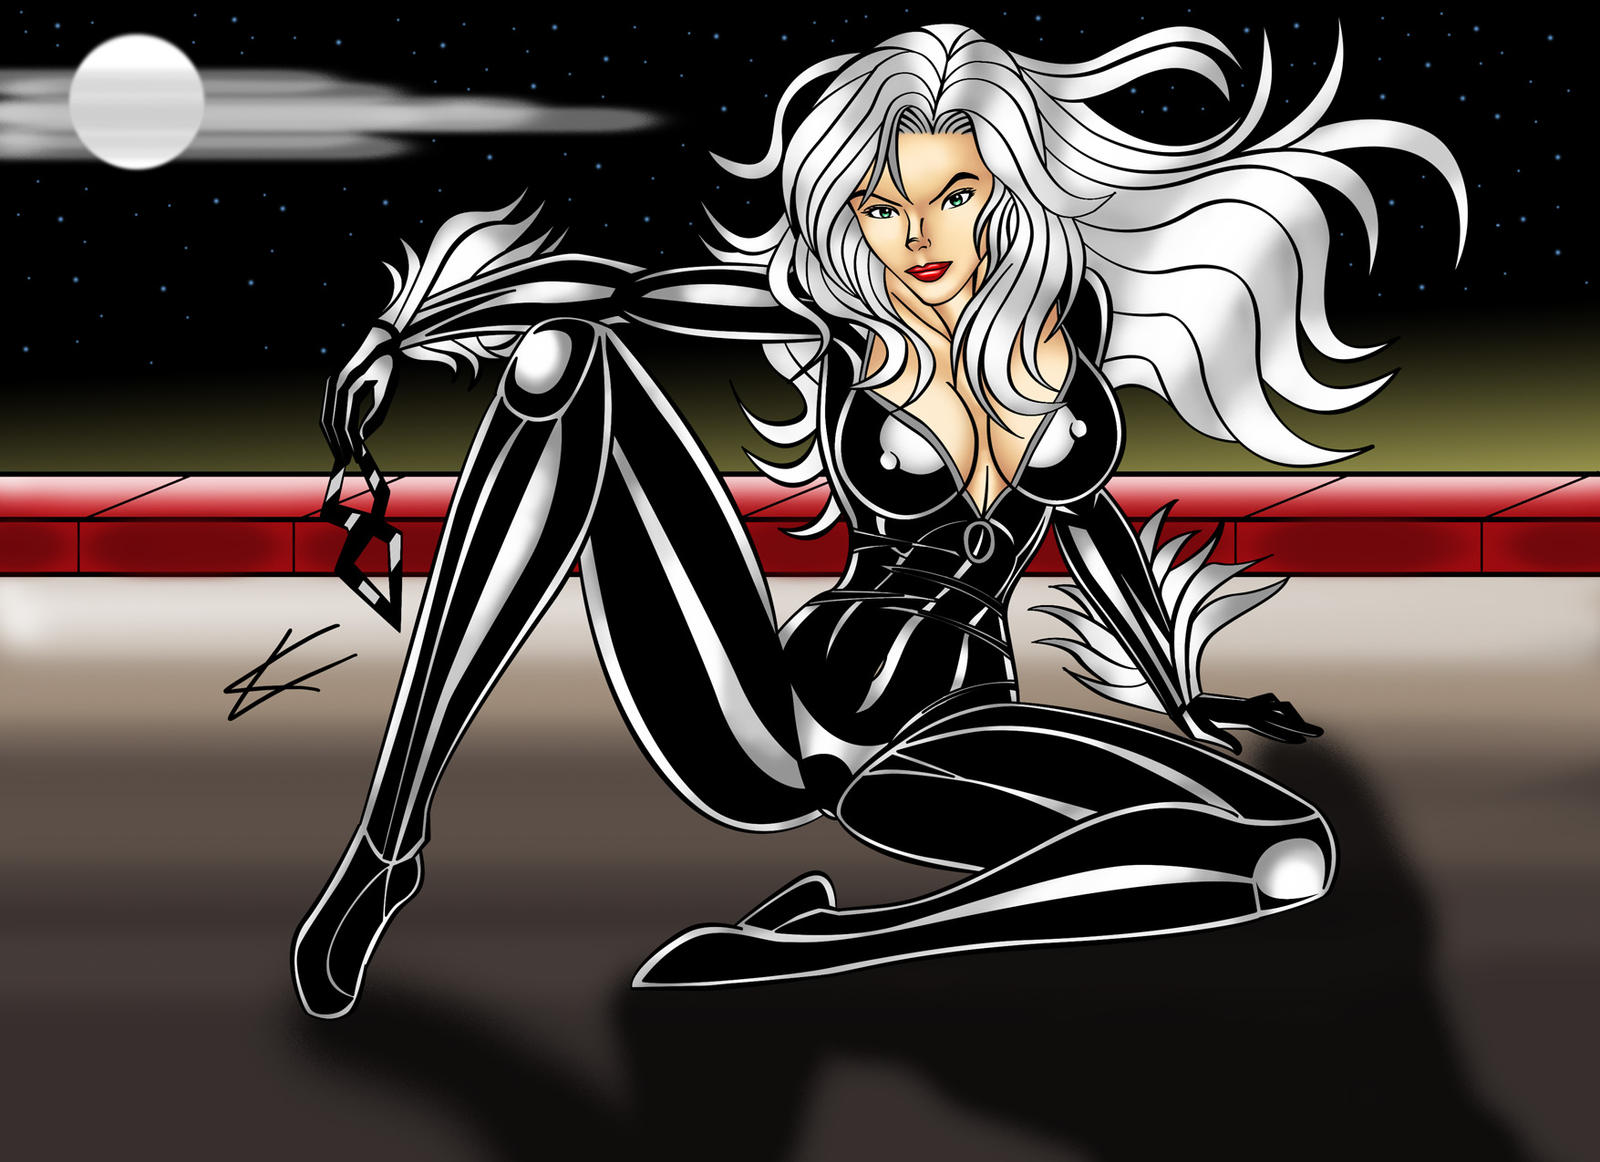 Blackcat Moonlighting by thequestionmark